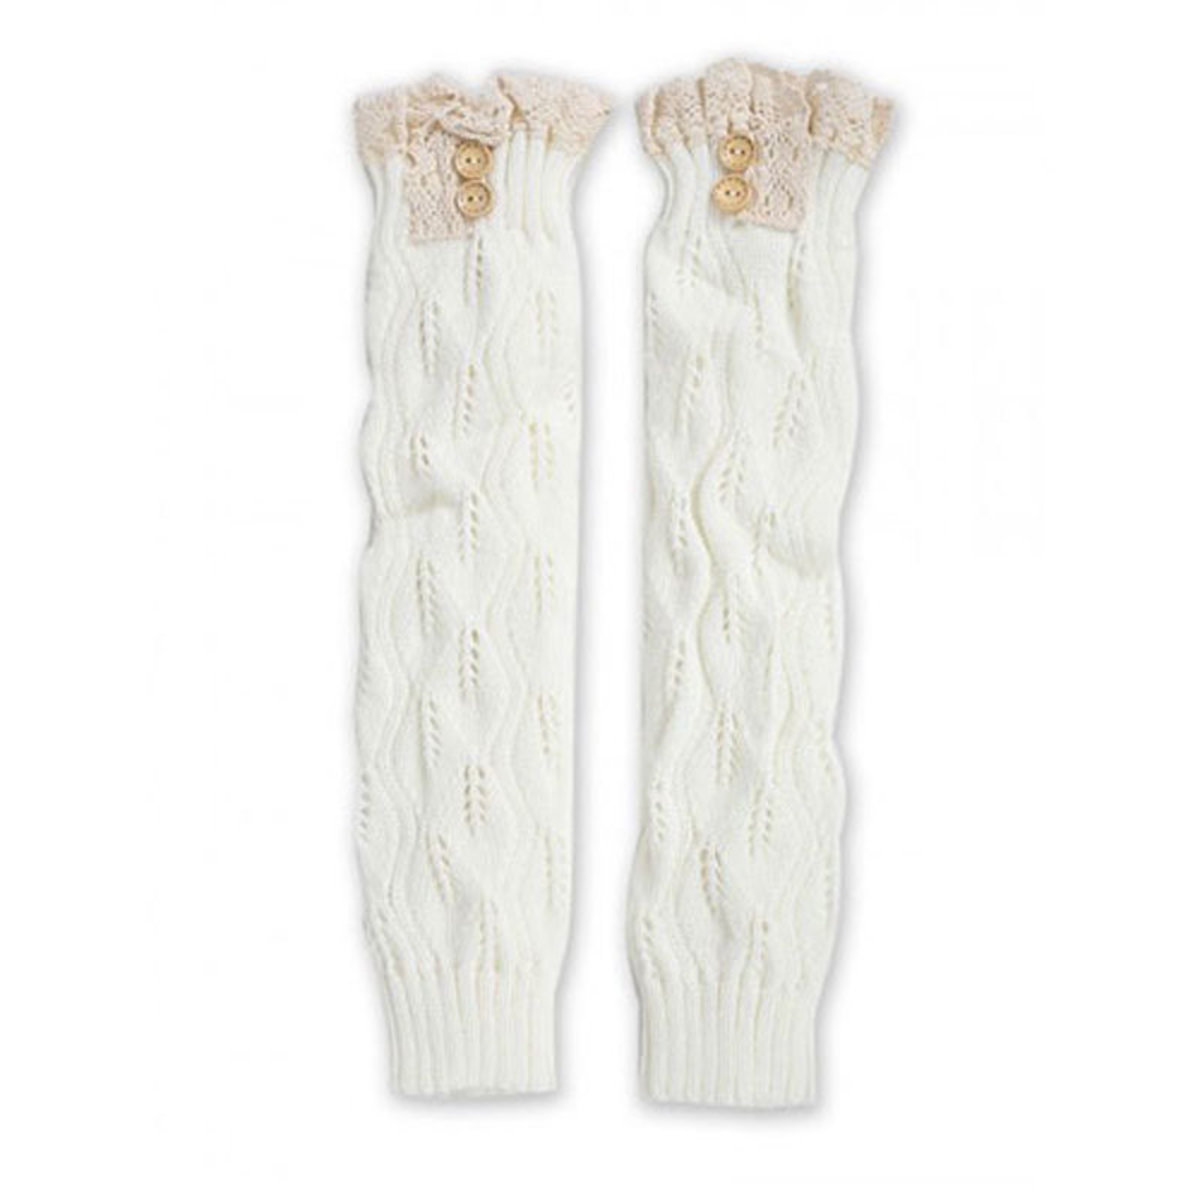 Choice Winter Knee High Cotton-Blend Boot Socks